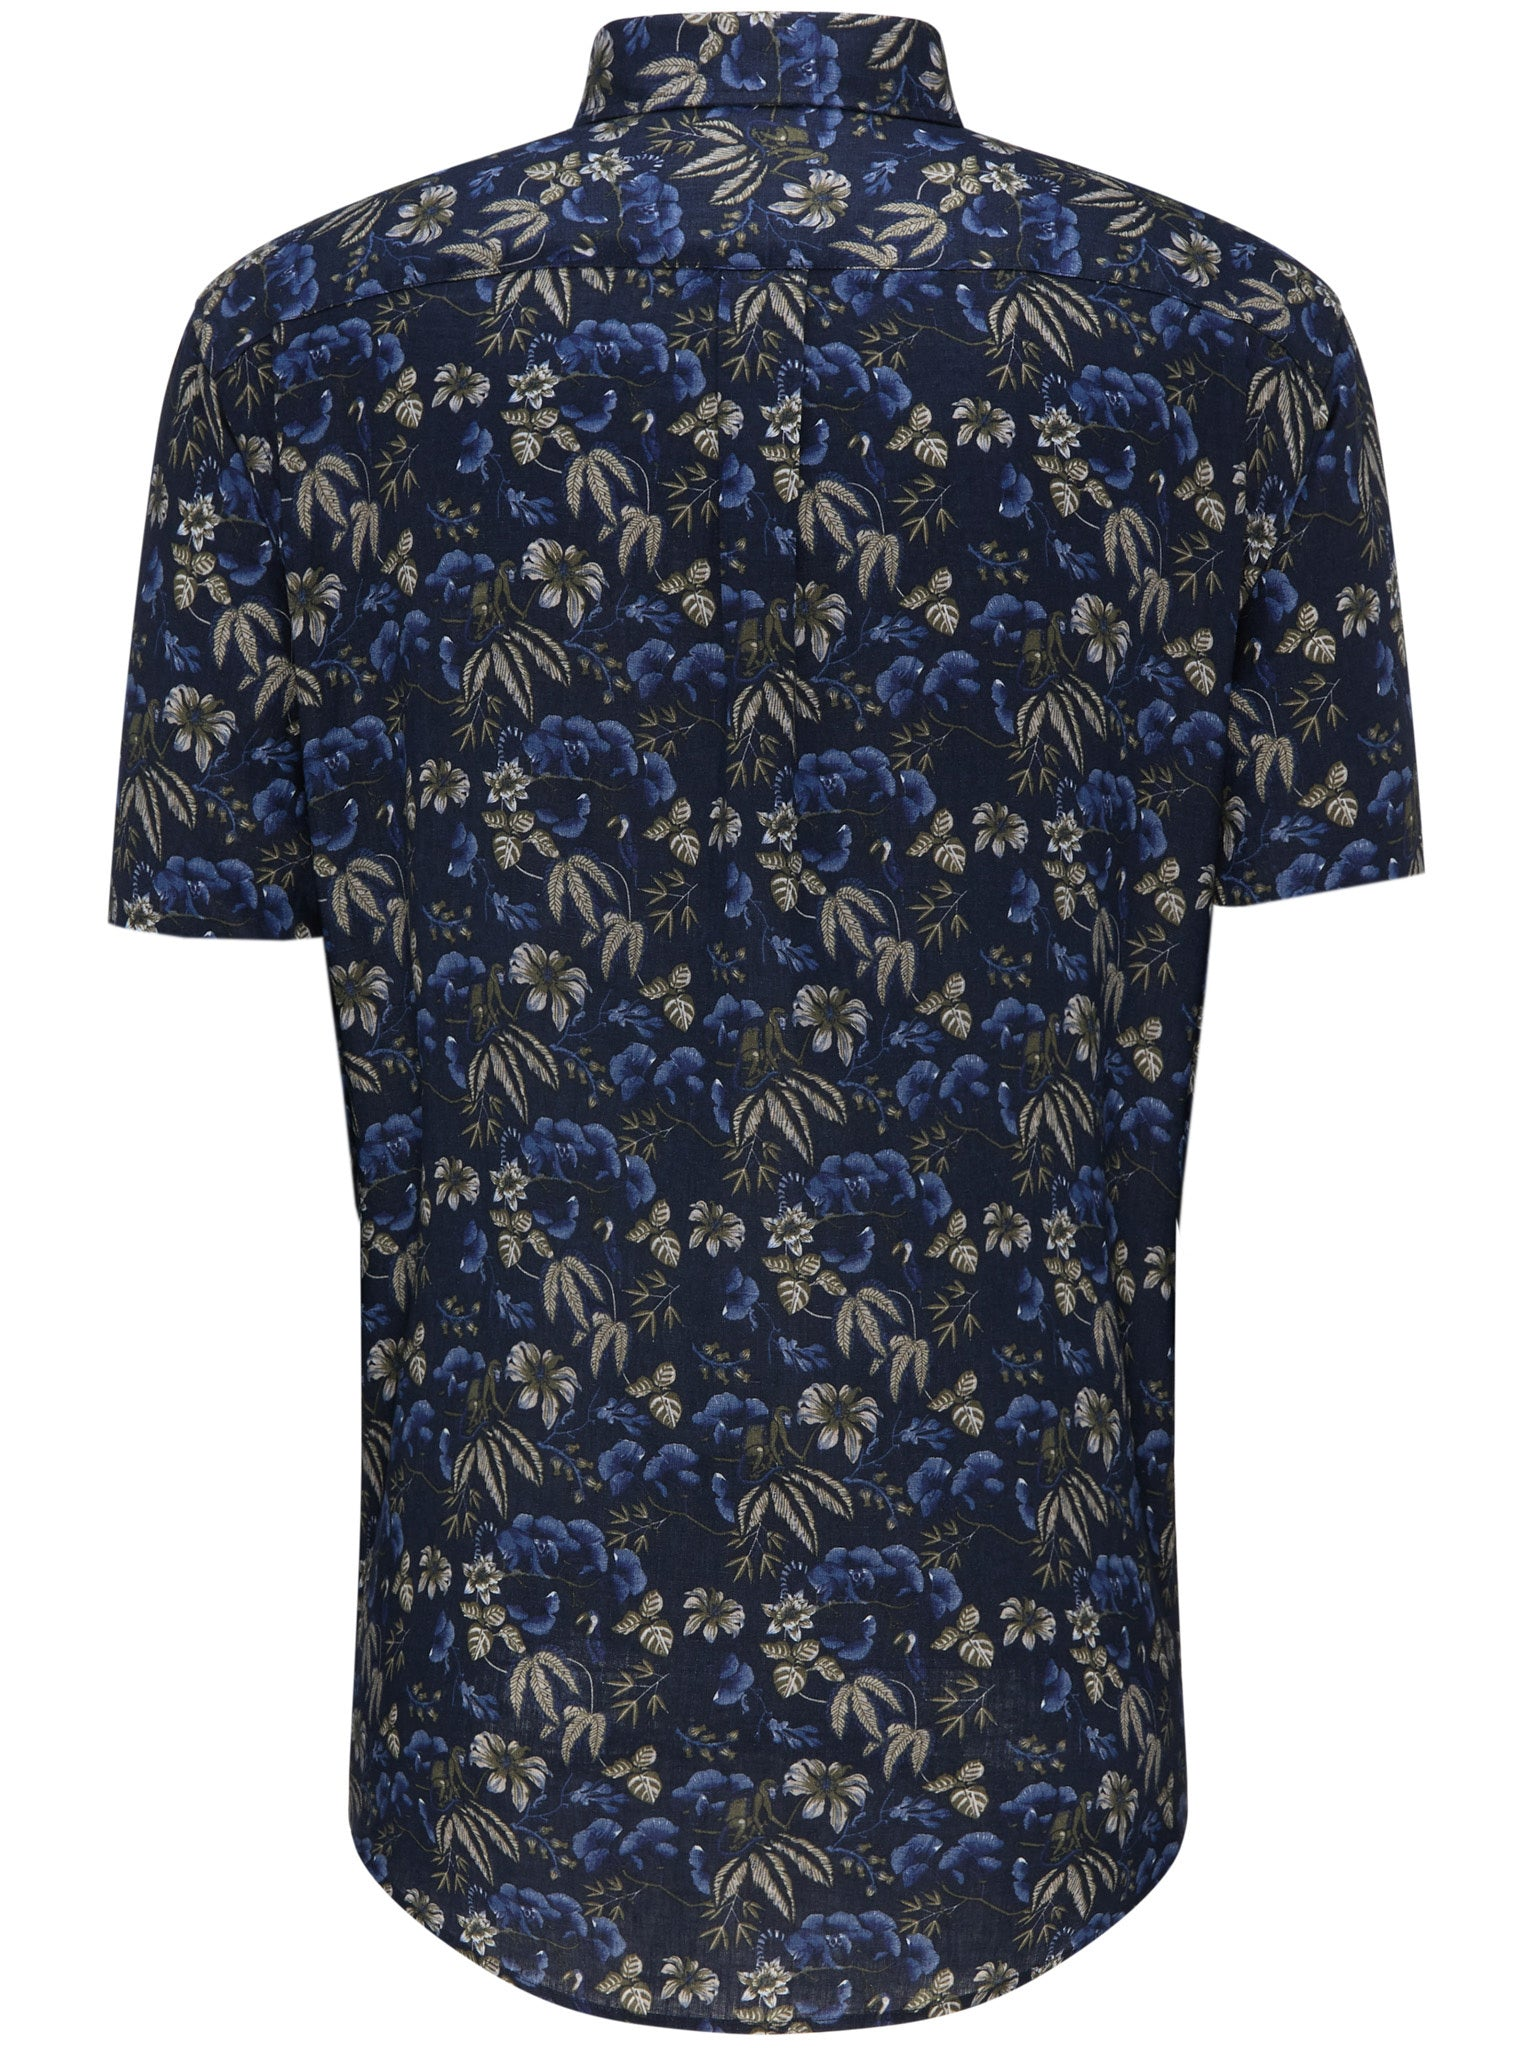 Fynch Hatton Linen Print Short Sleeved Shirt for Men in Navy Flower